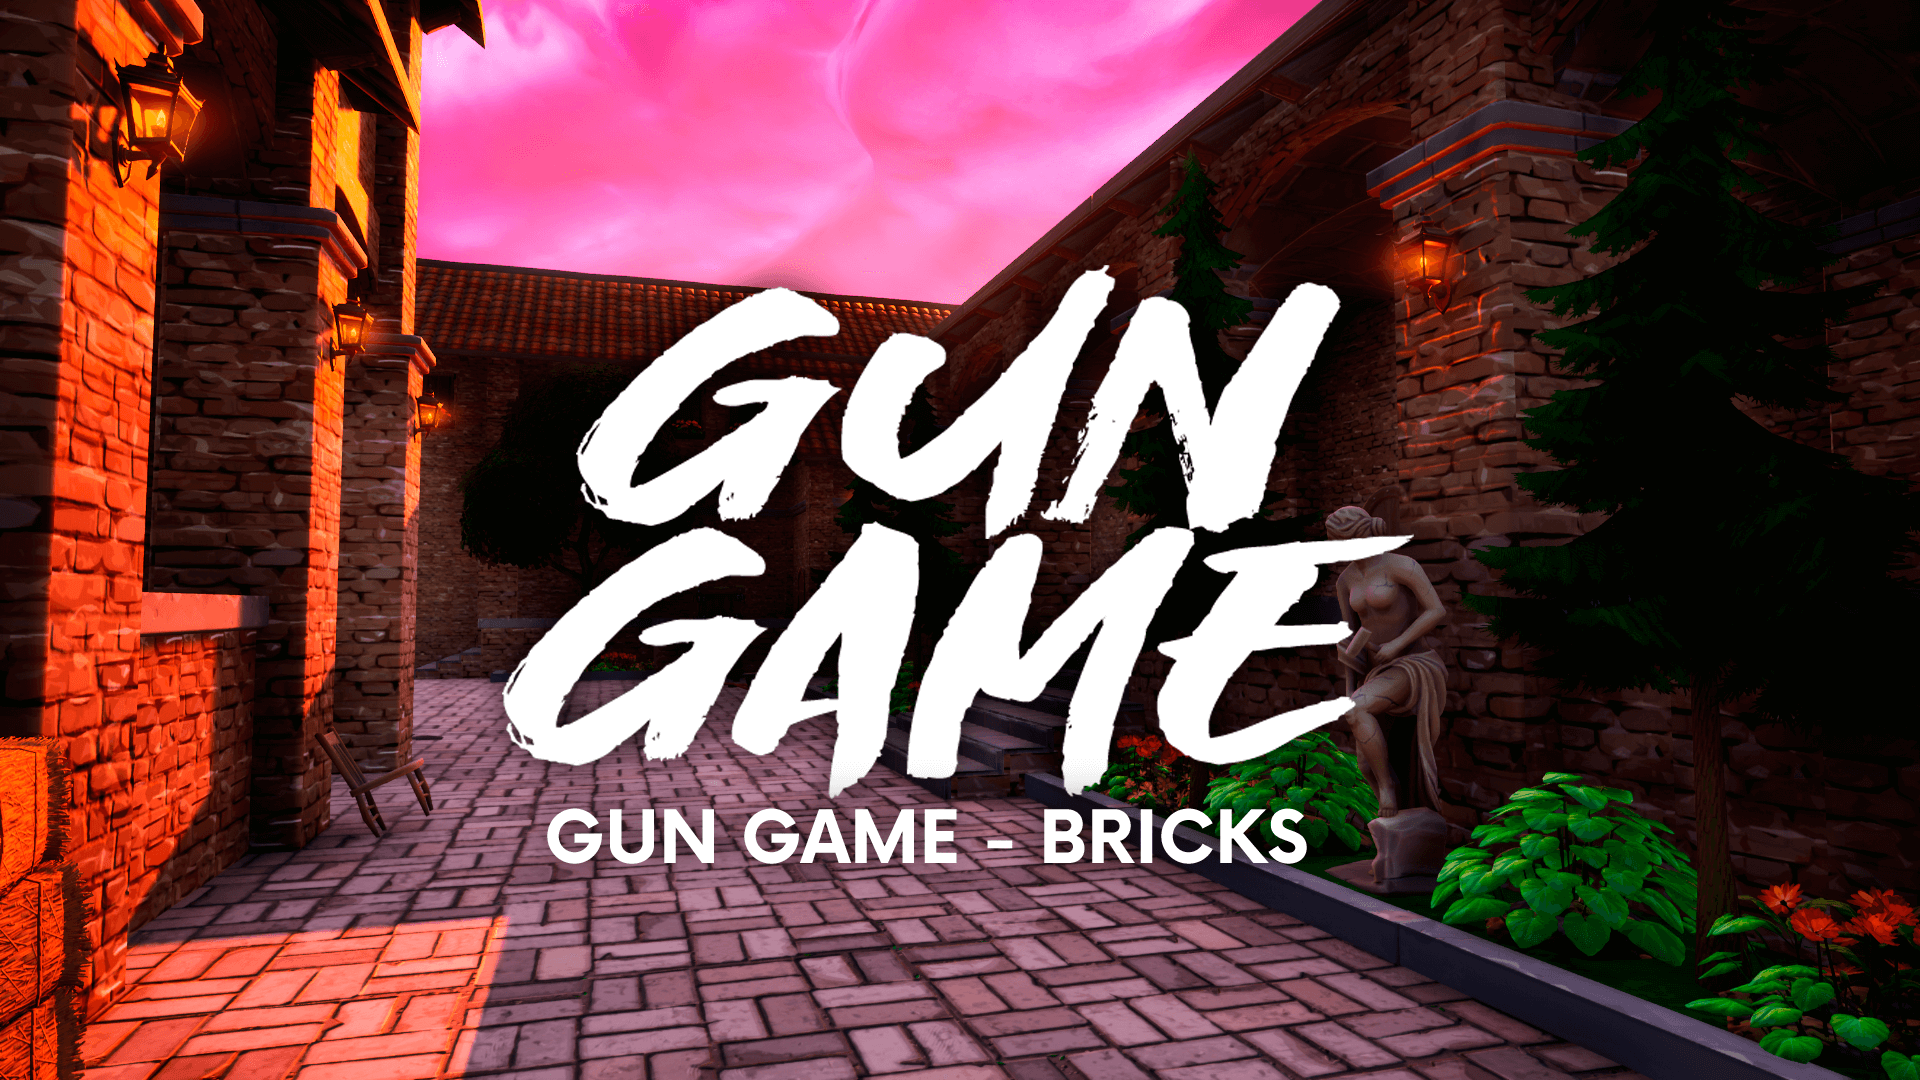 GUN GAME - BRICKS